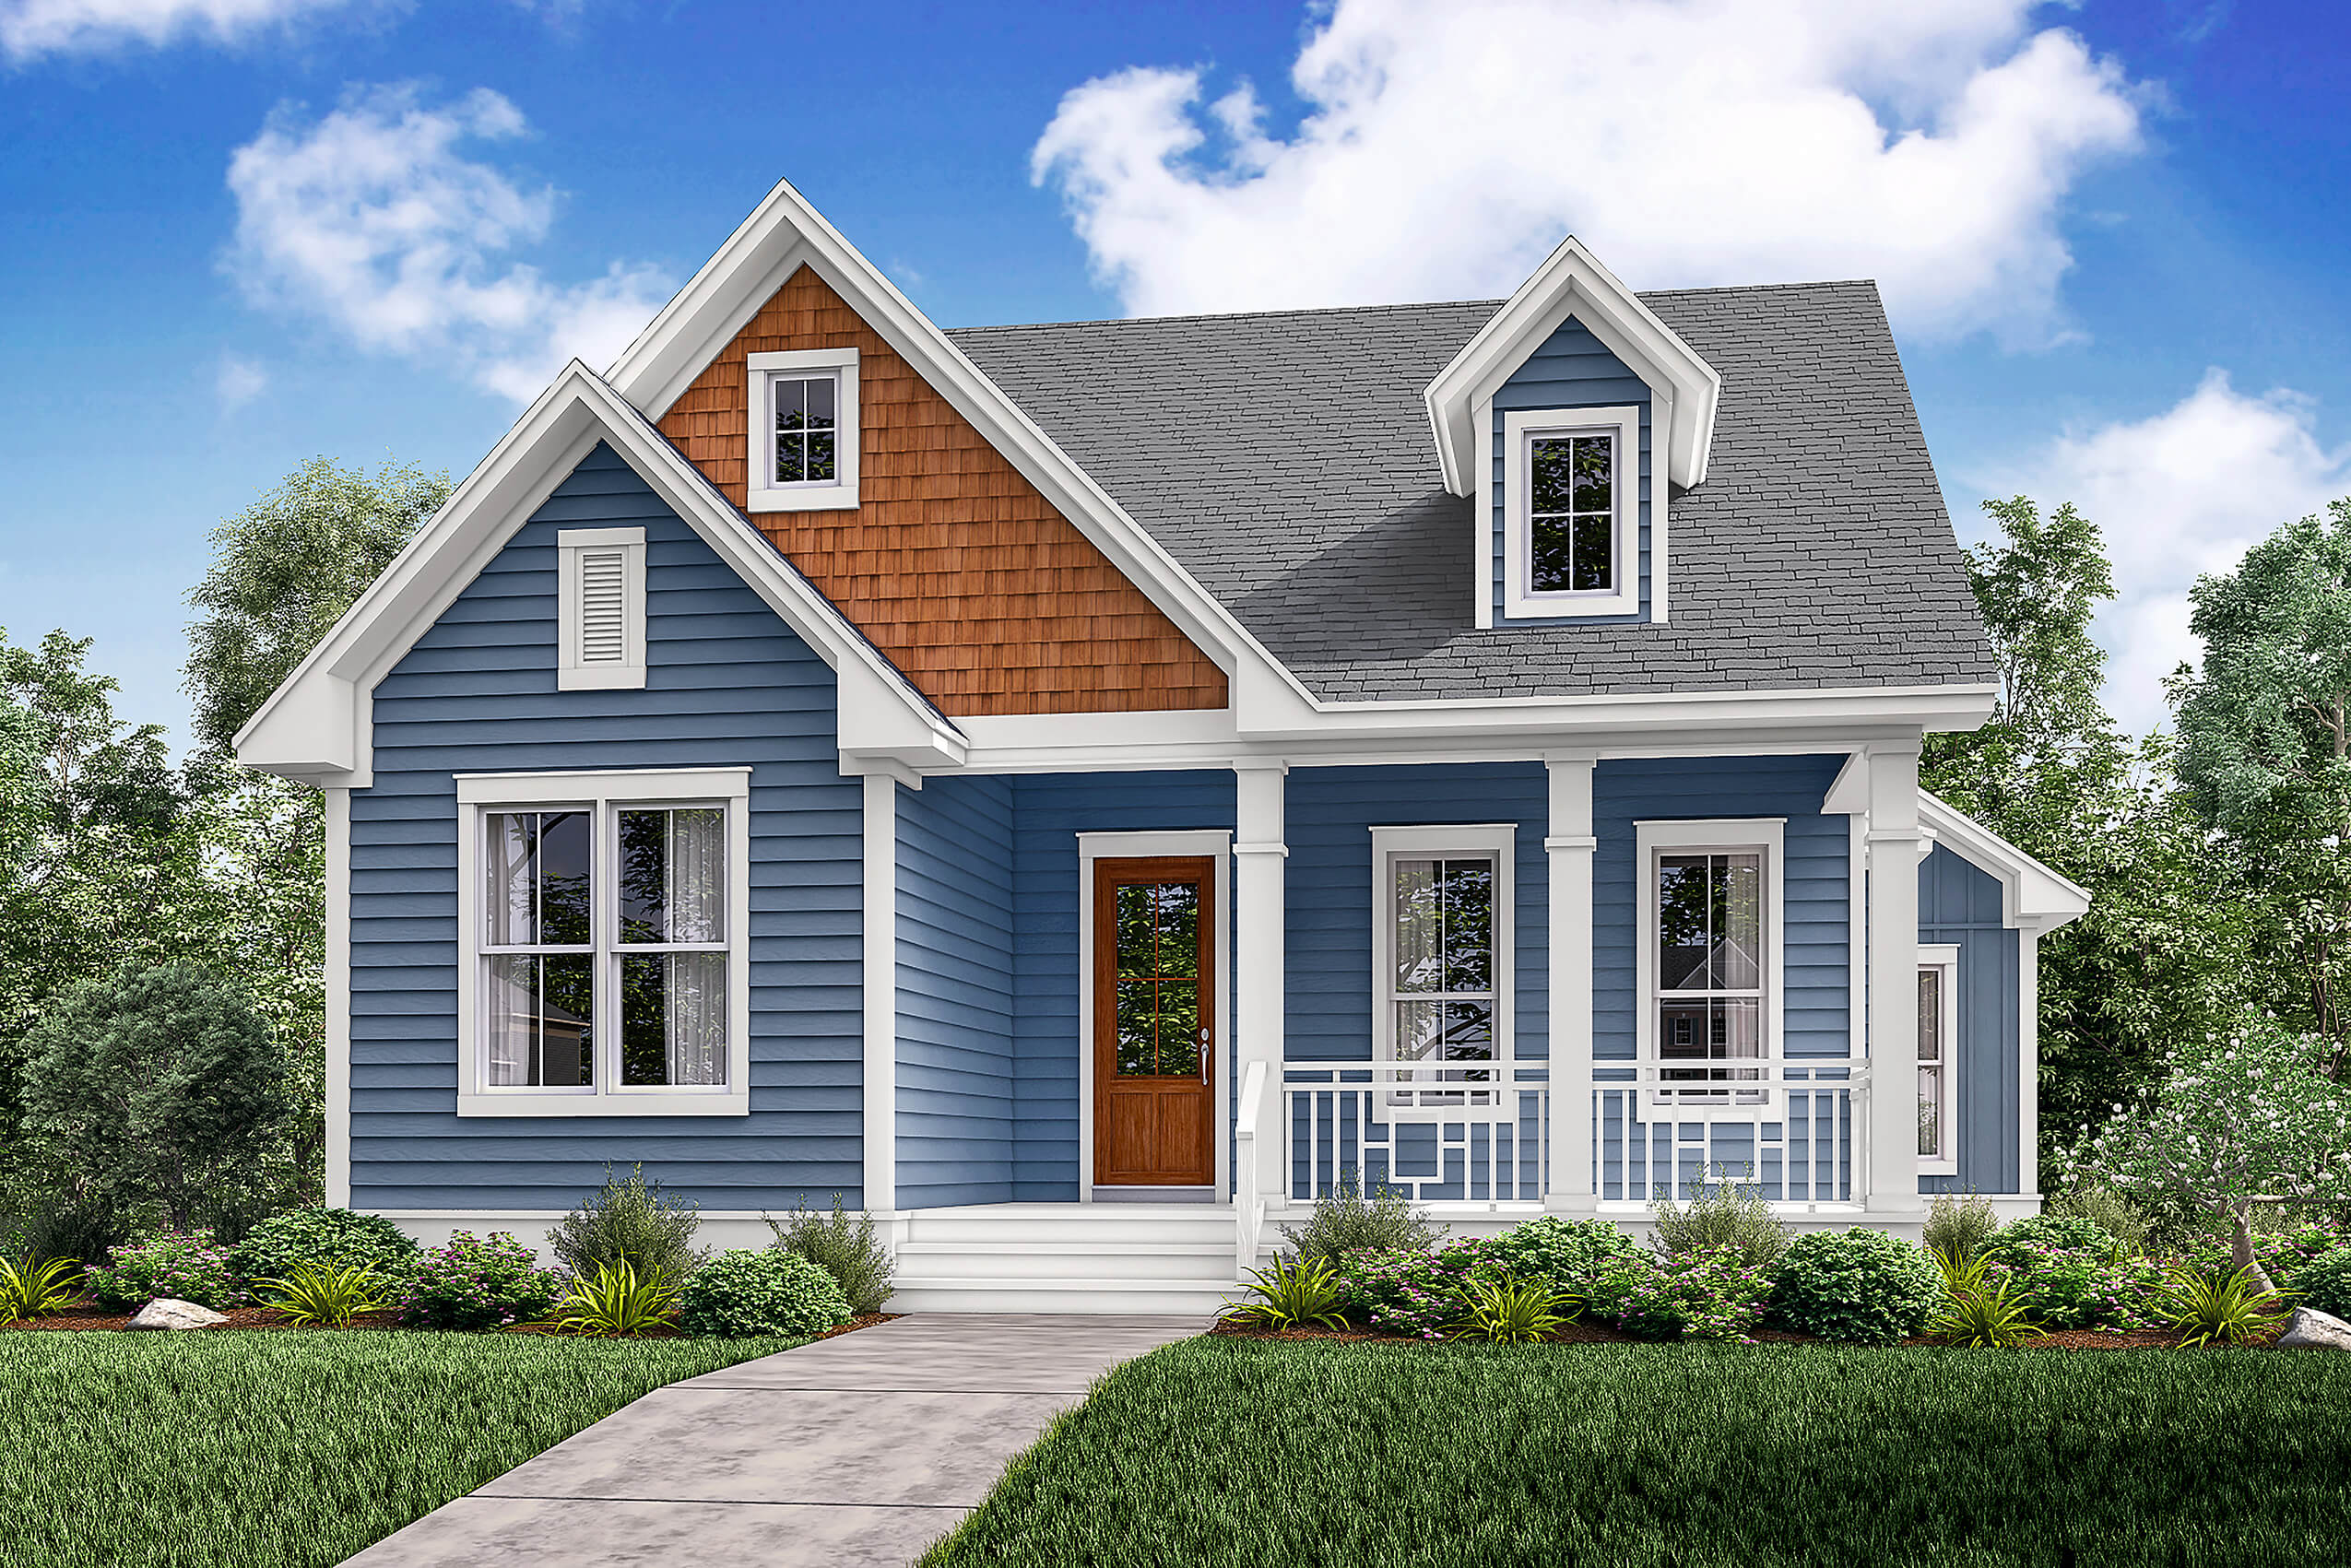 Small house plan home plan 142 -  142 1164 Front Elevation Of Craftsman Home Plan Theplancollection House Plan 142 1164